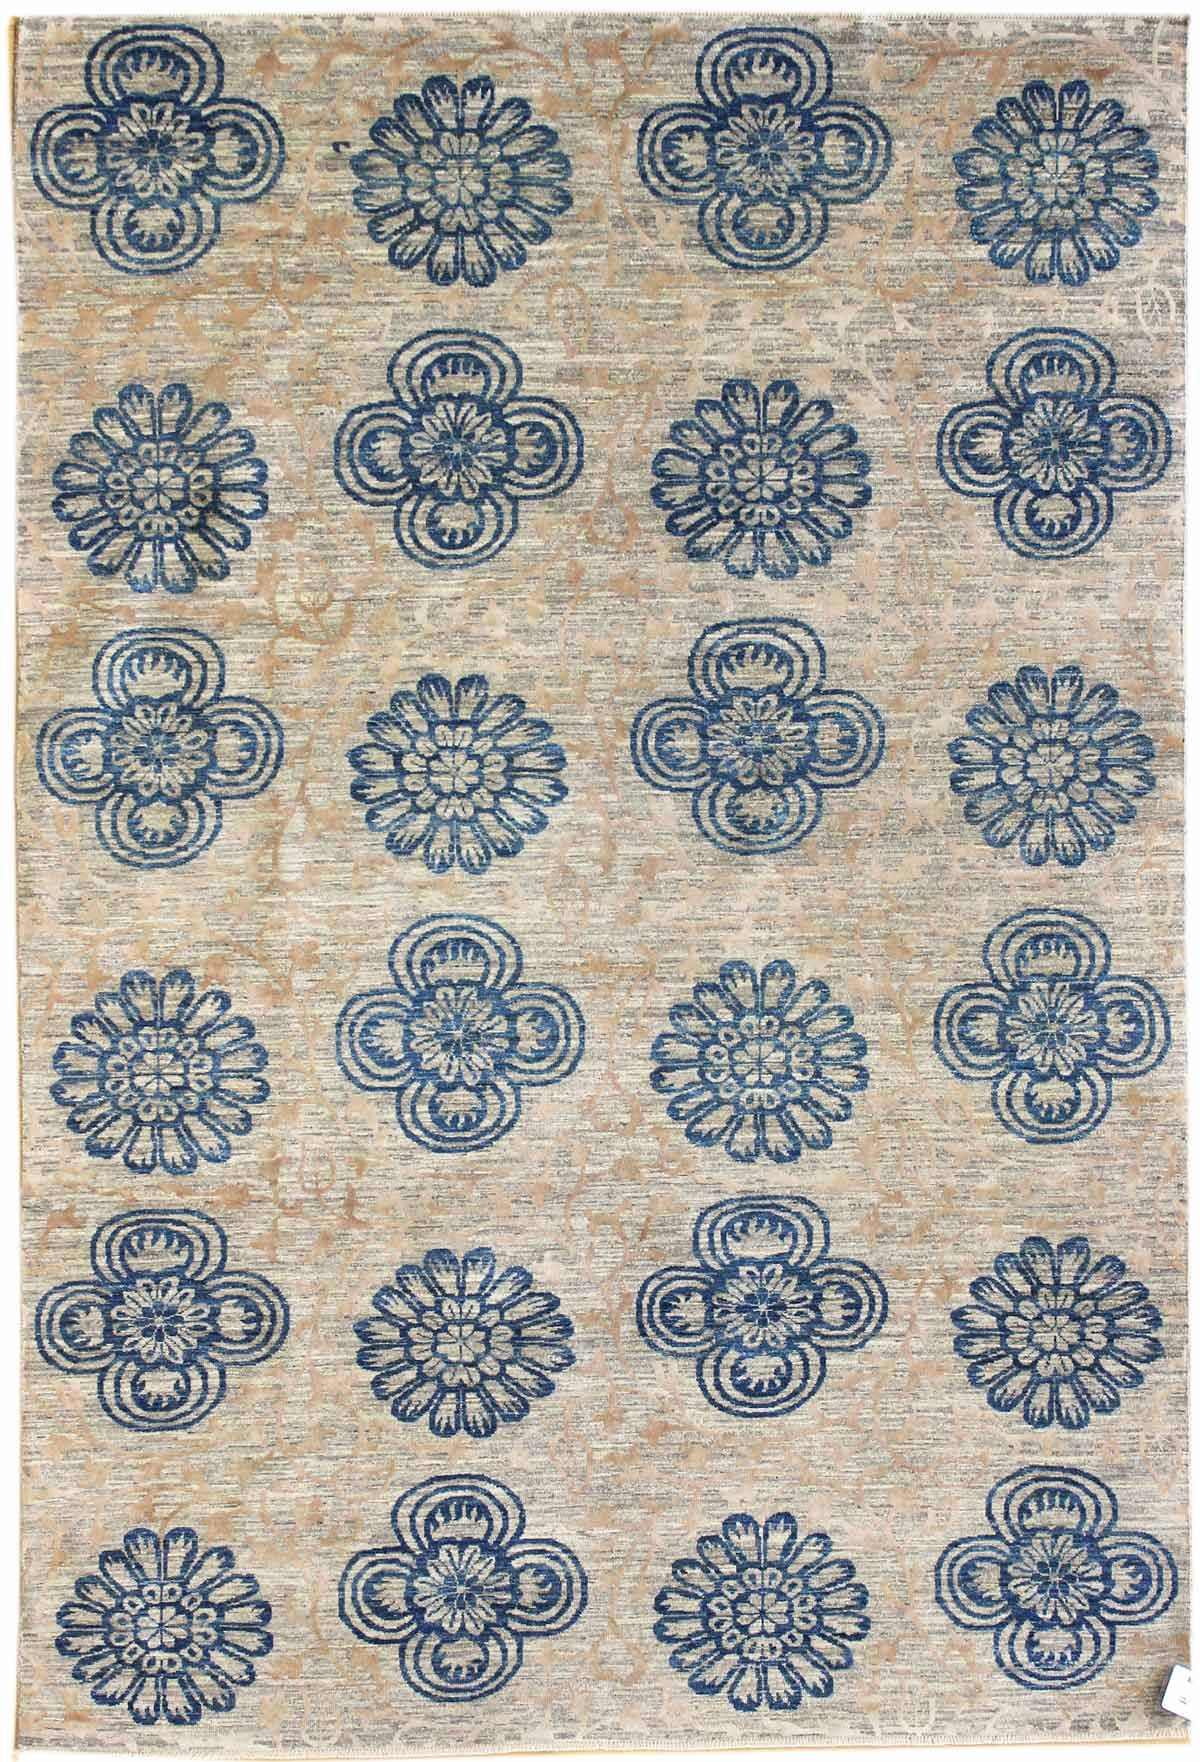 Transitional Rugs Gallery: Transitional Design Rug, Hand-woven in Pakistan; size: 6 feet 1 inch(es) x 8 feet 7 inch(es)